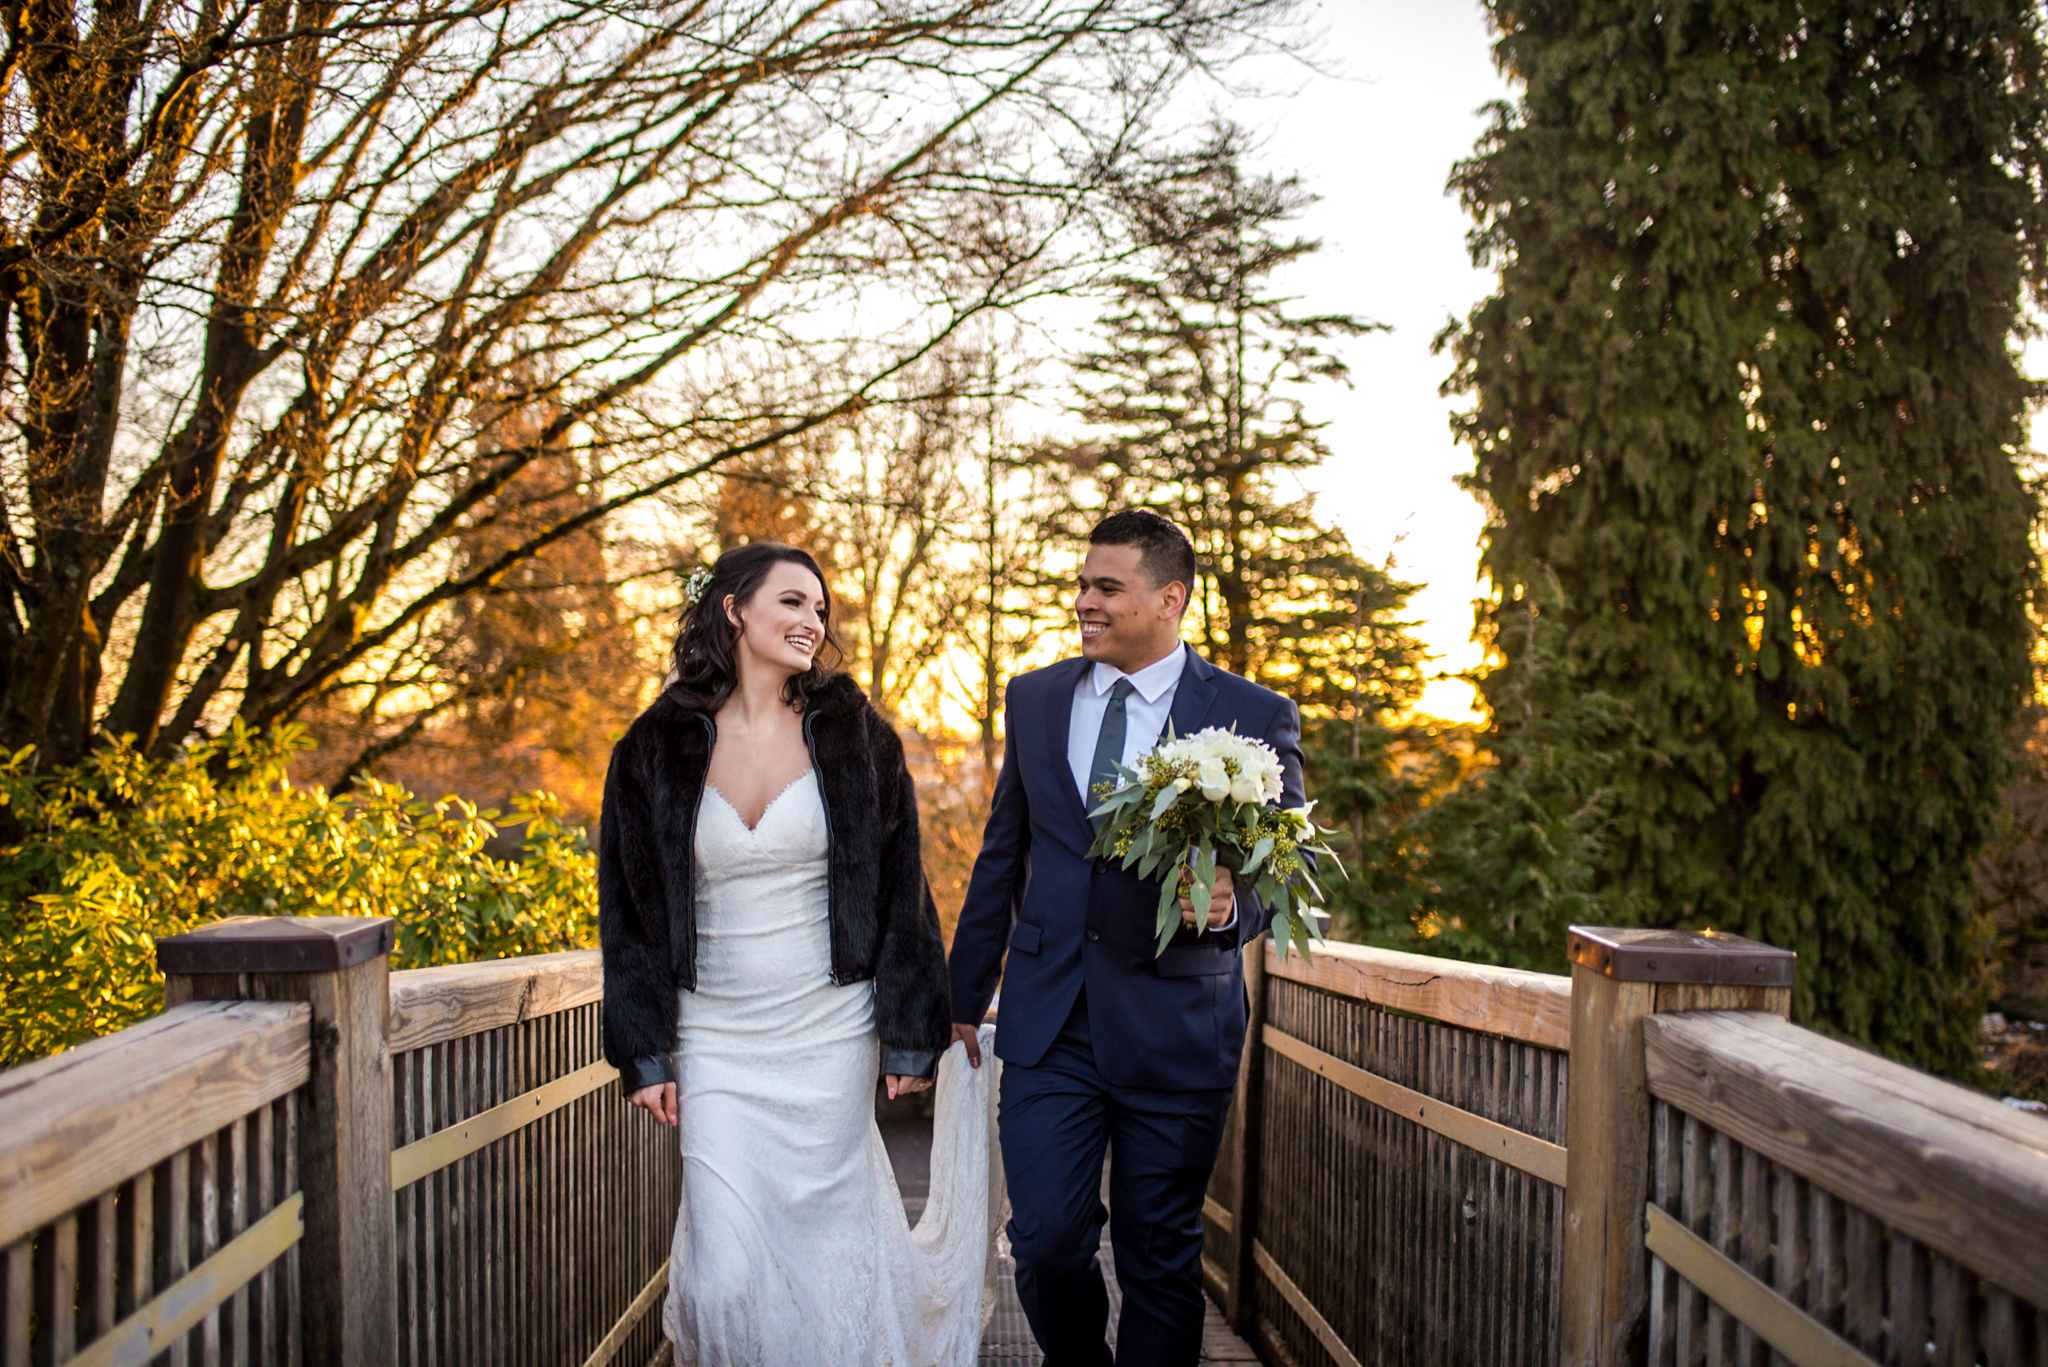 Queen Elizabeth Park Wedding Photographer-56.jpg